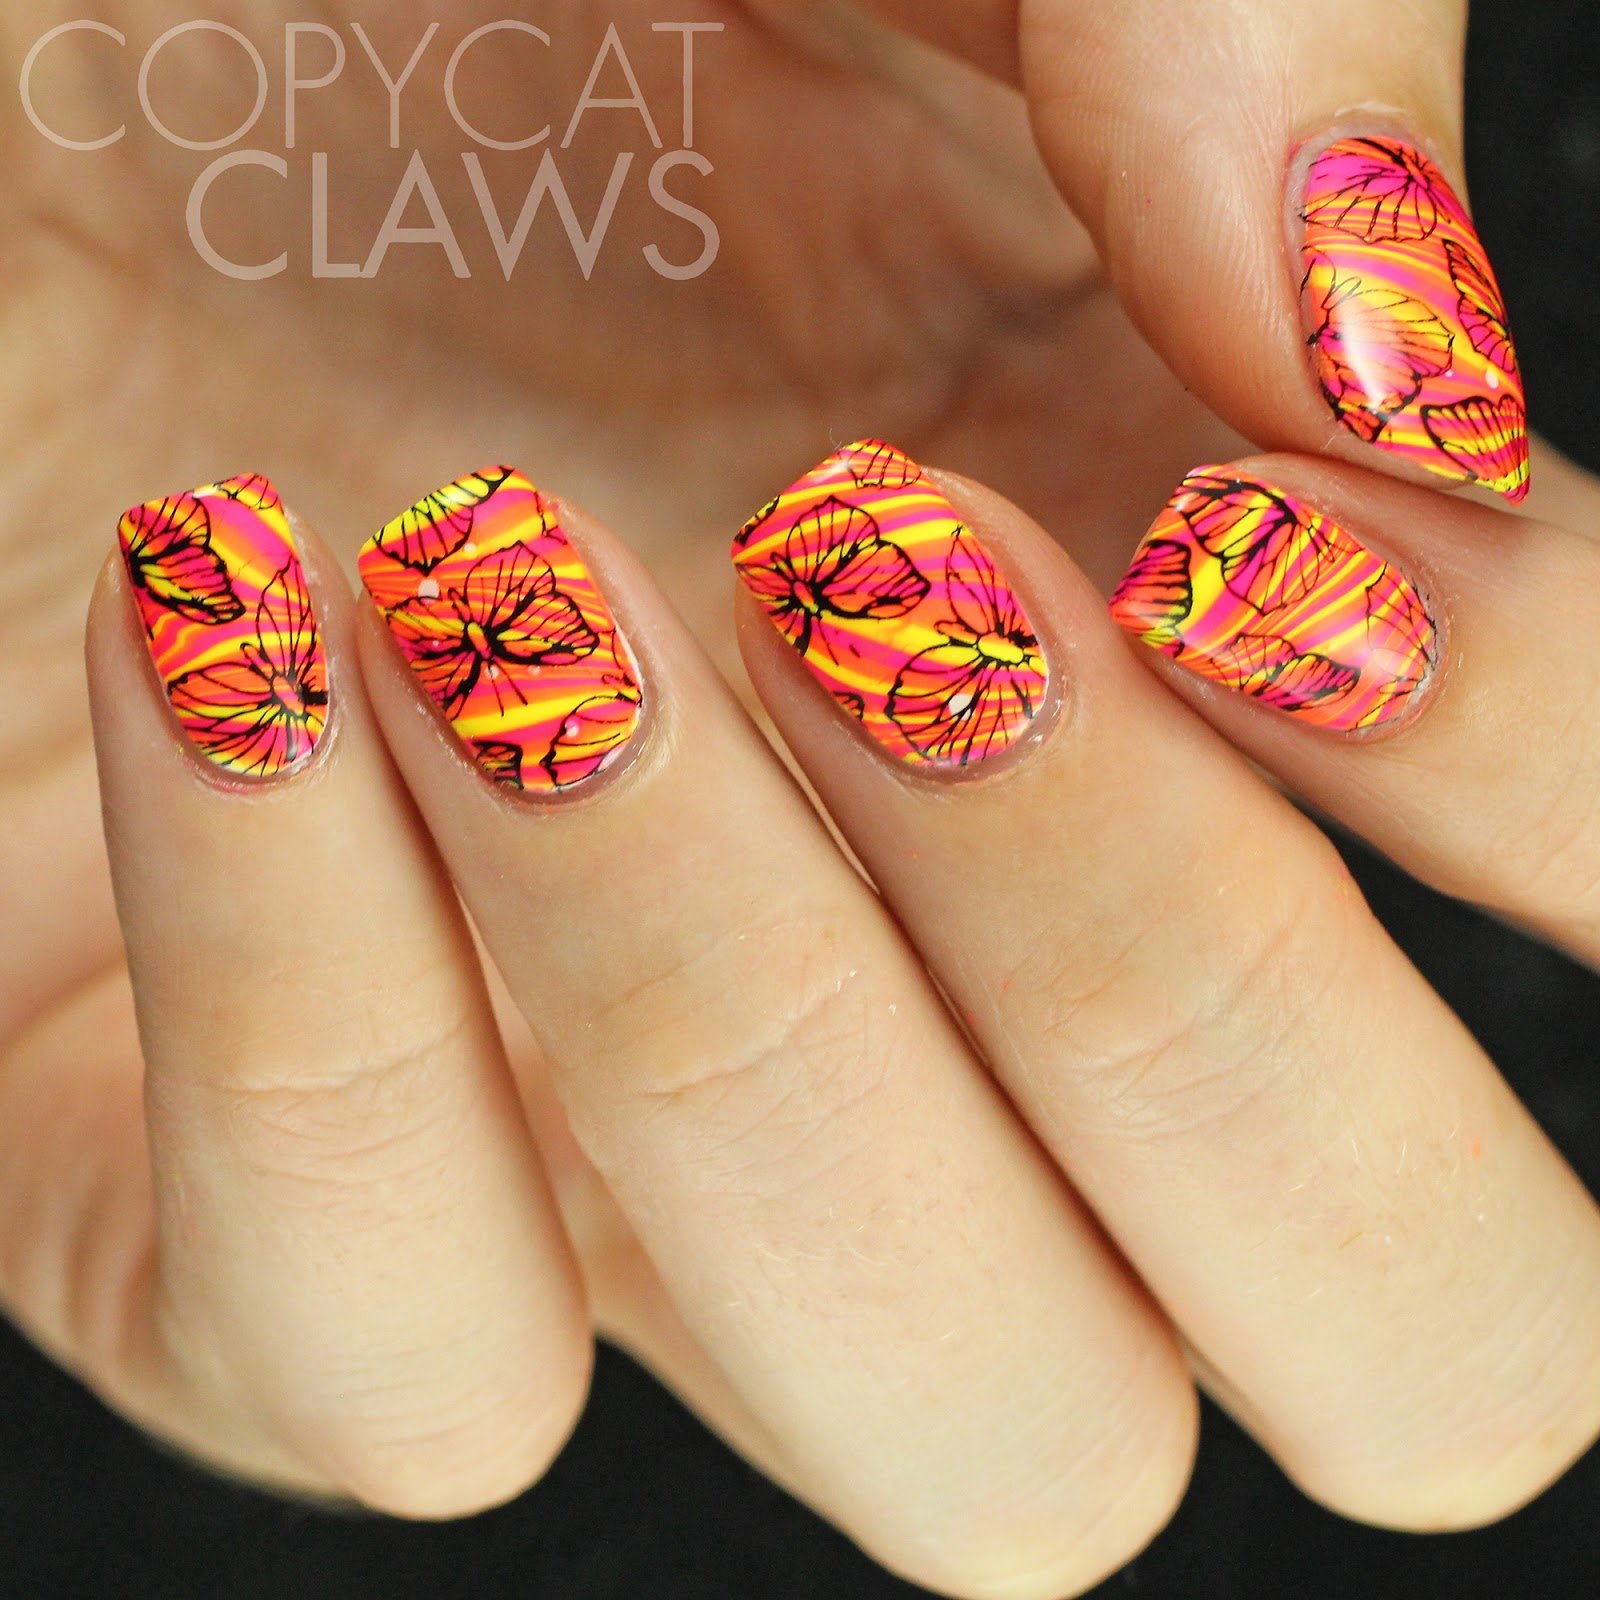 Copycat Claws: UberChic Stamping With A Giveaway